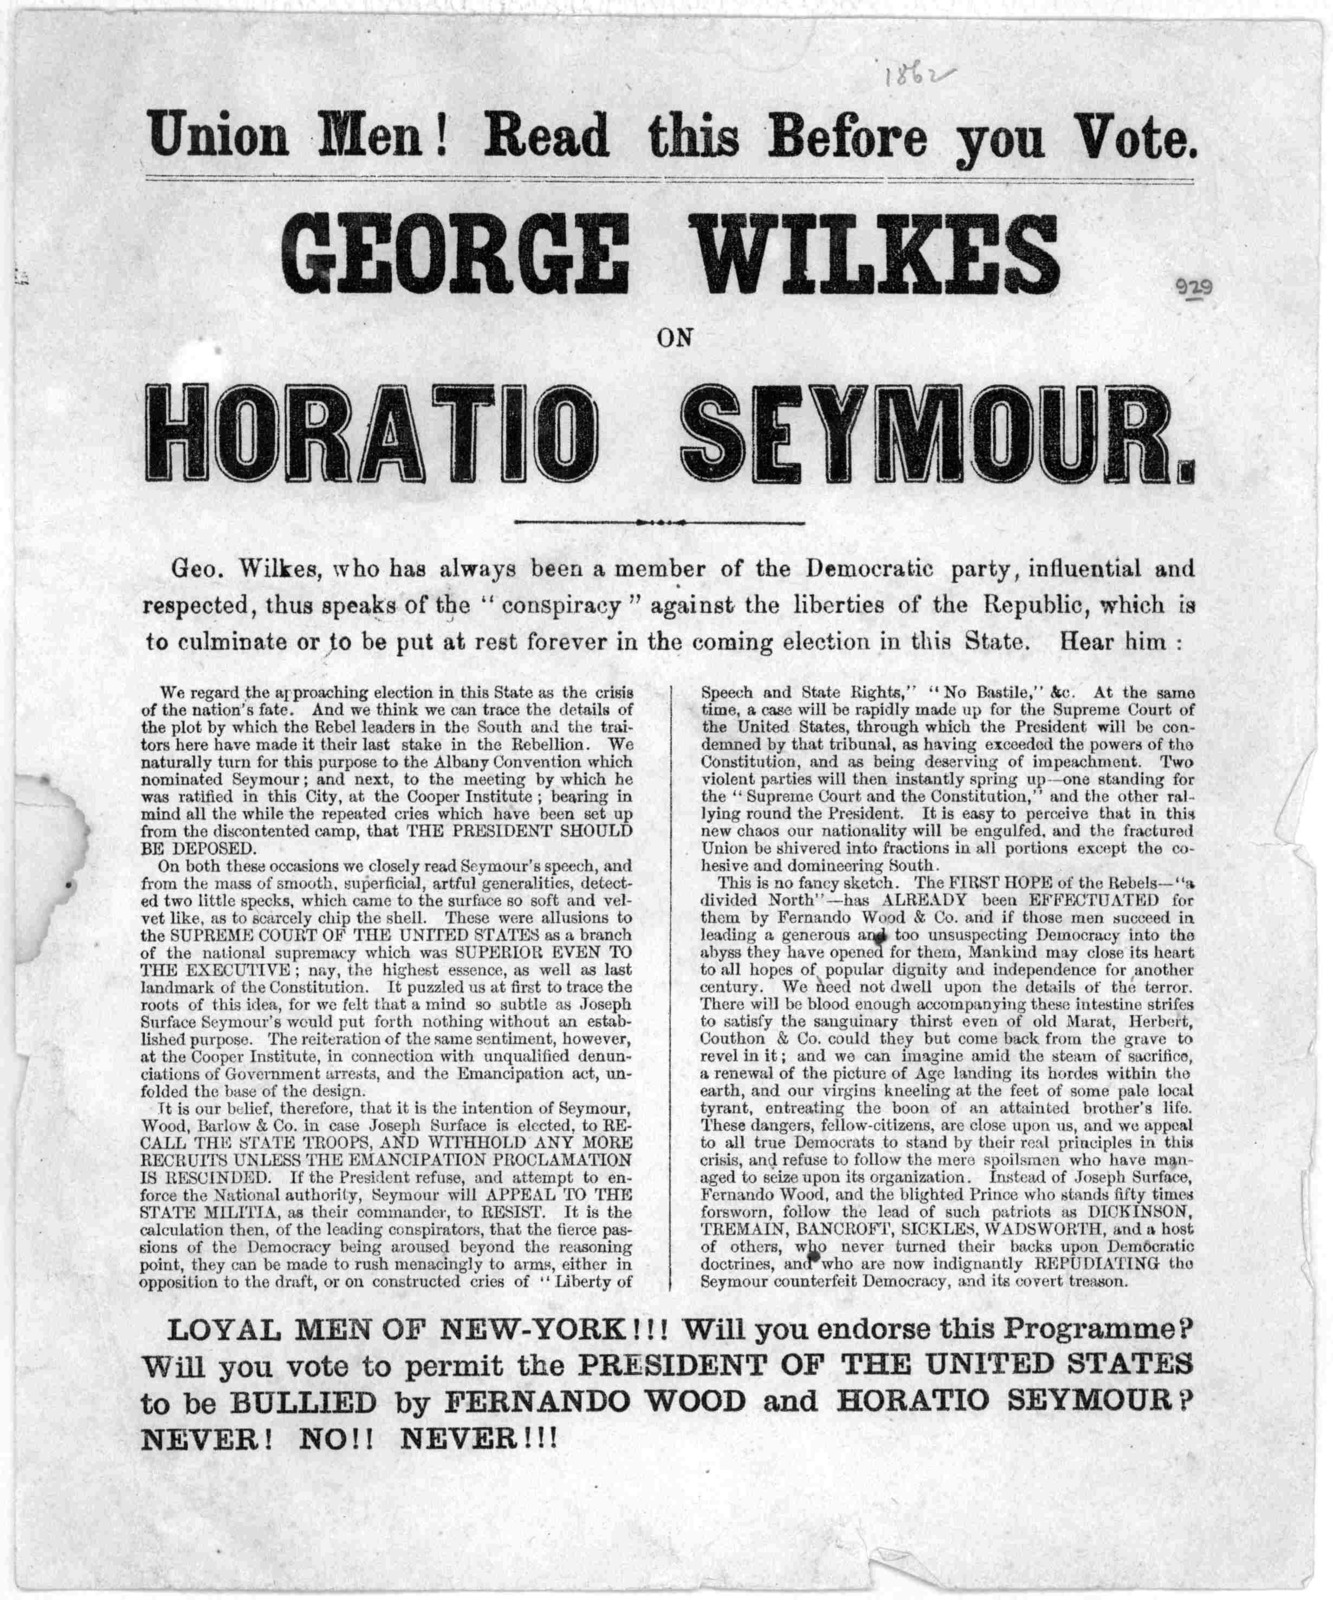 Union men! Read this before you vote. George Wilkes on Horatio Seymour ... Loyal men of New York!!! Will you endorse this programme Will you vote to permit the President of the United States to be bullied by Fernando Wood and Horatio Seymour? Ne